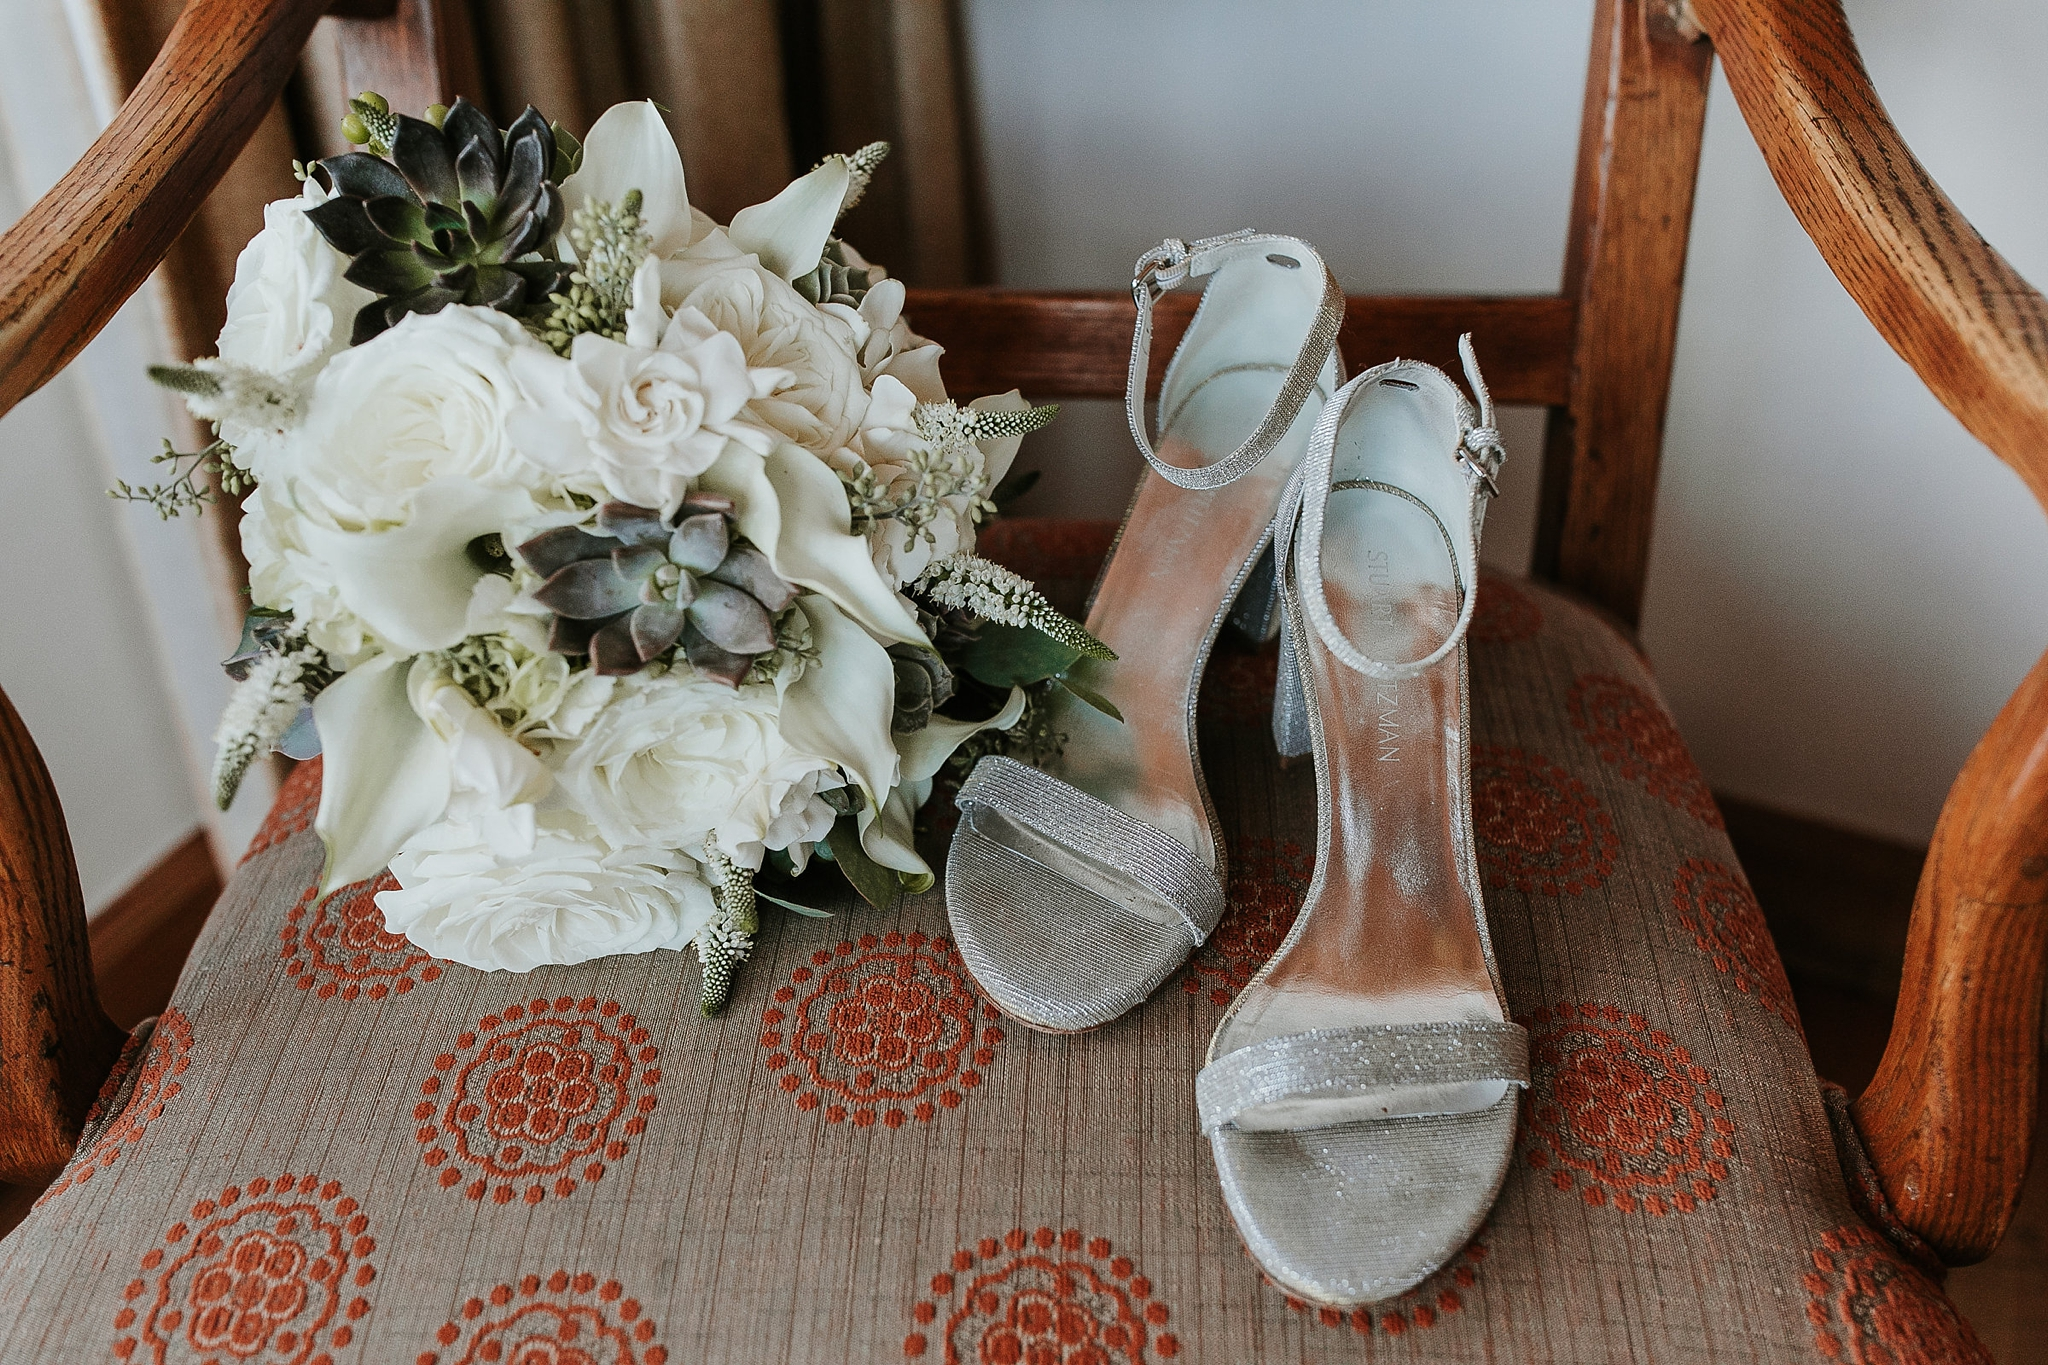 Alicia+lucia+photography+-+albuquerque+wedding+photographer+-+santa+fe+wedding+photography+-+new+mexico+wedding+photographer+-+new+mexico+wedding+-+new+mexico+wedding+-+colorado+wedding+-+bridal+shoes+-+bridal+inspo_0037.jpg